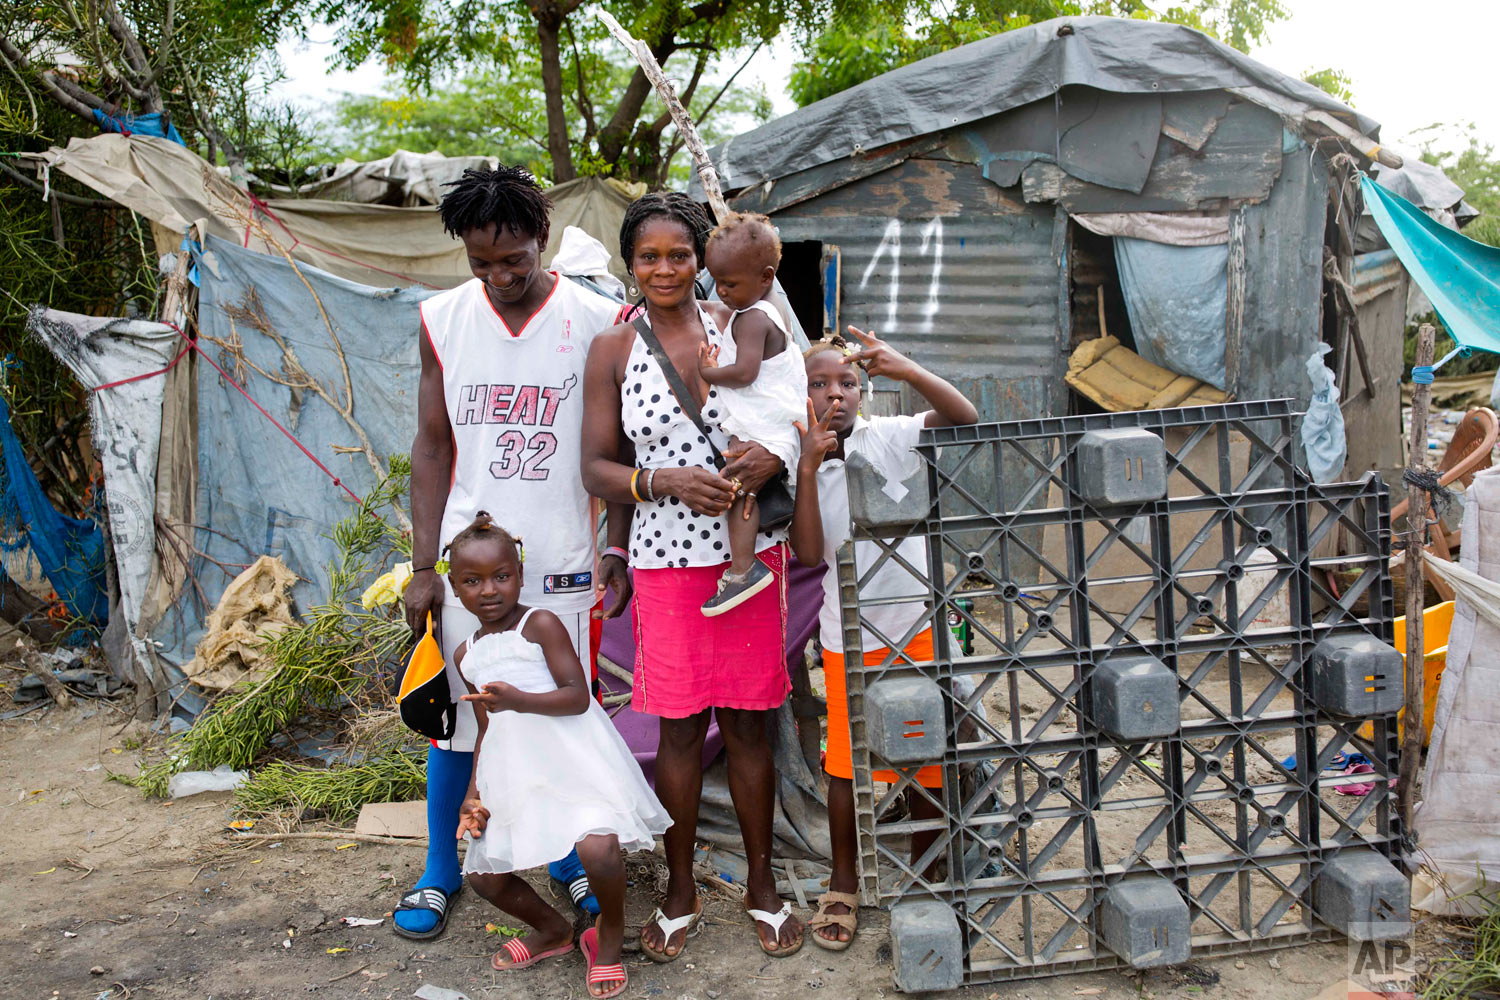 Changlair Aristide stands with his wife Violene Mareus and daughters outside their home before leaving to play soccer. 9-year-old Changline stands at right. 3-year-old Belinda is held by her mother. 5-year-old Viergeline stands below. Aug. 29, 2018. (AP Photo/Dieu Nalio Chery)